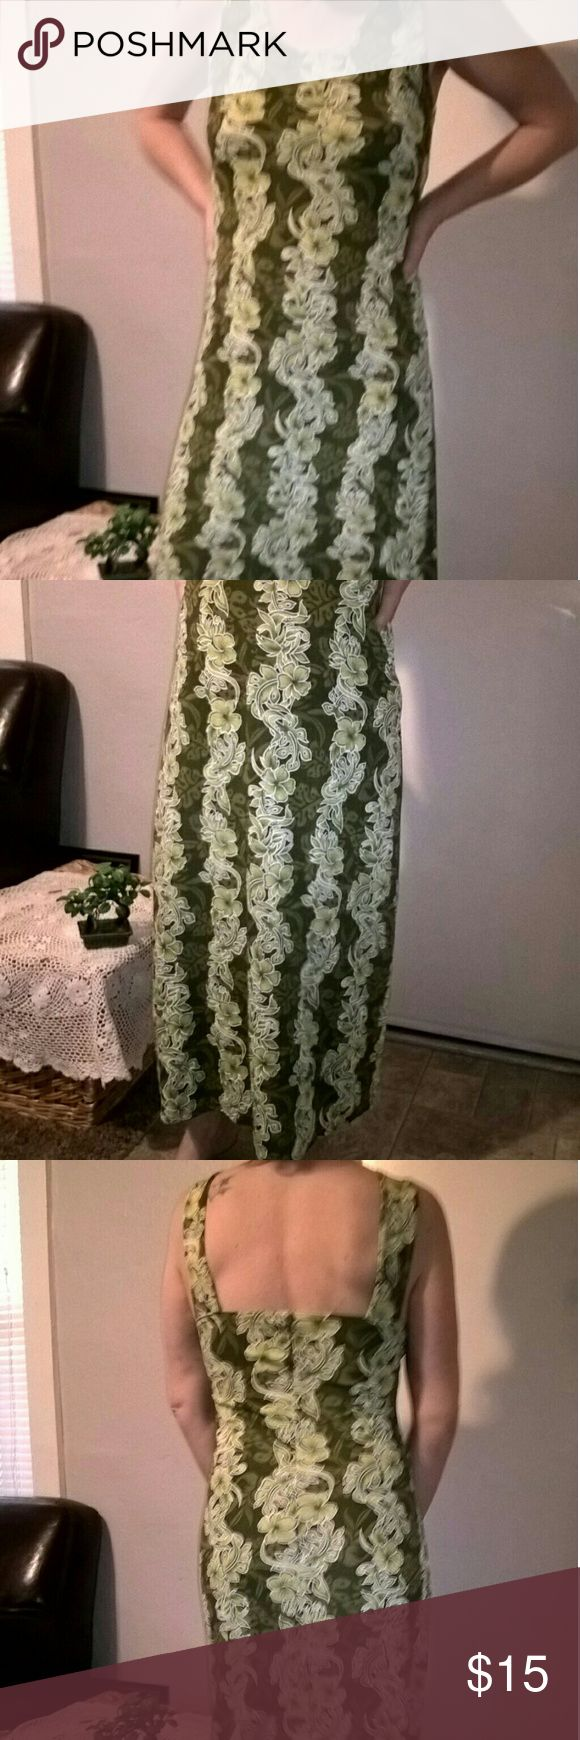 Hawaiian Print Dress Many shades of green prints and contrasting white lining around flowers with the darker background make this long dress eye popping, yet soothing at the same time. It's a very light and soft dress that's form-fitting and hella comfortable. no tag Dresses Maxi